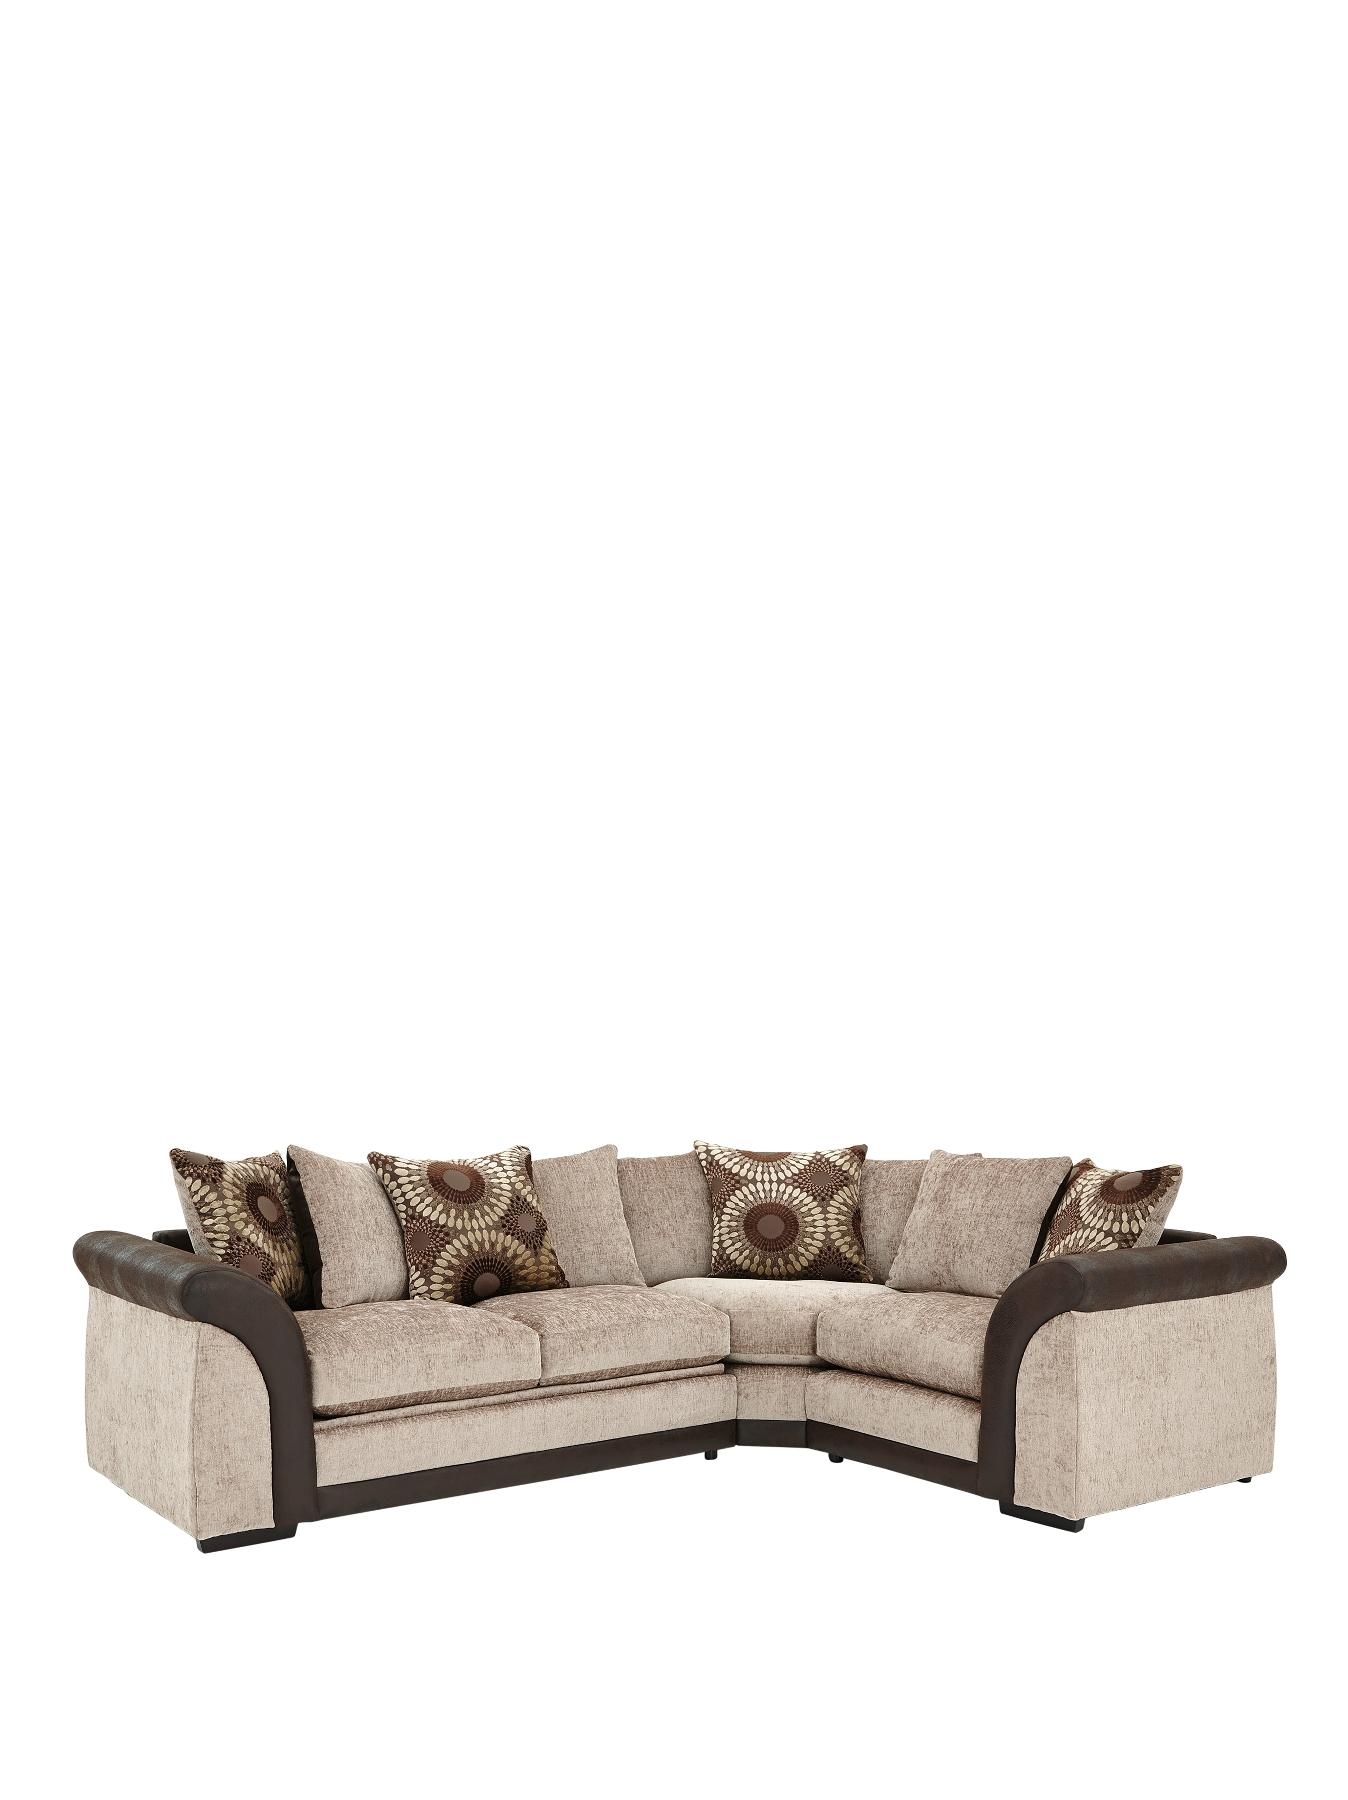 Deane RightHand Corner Group with Sofa Bed BlackChocolate